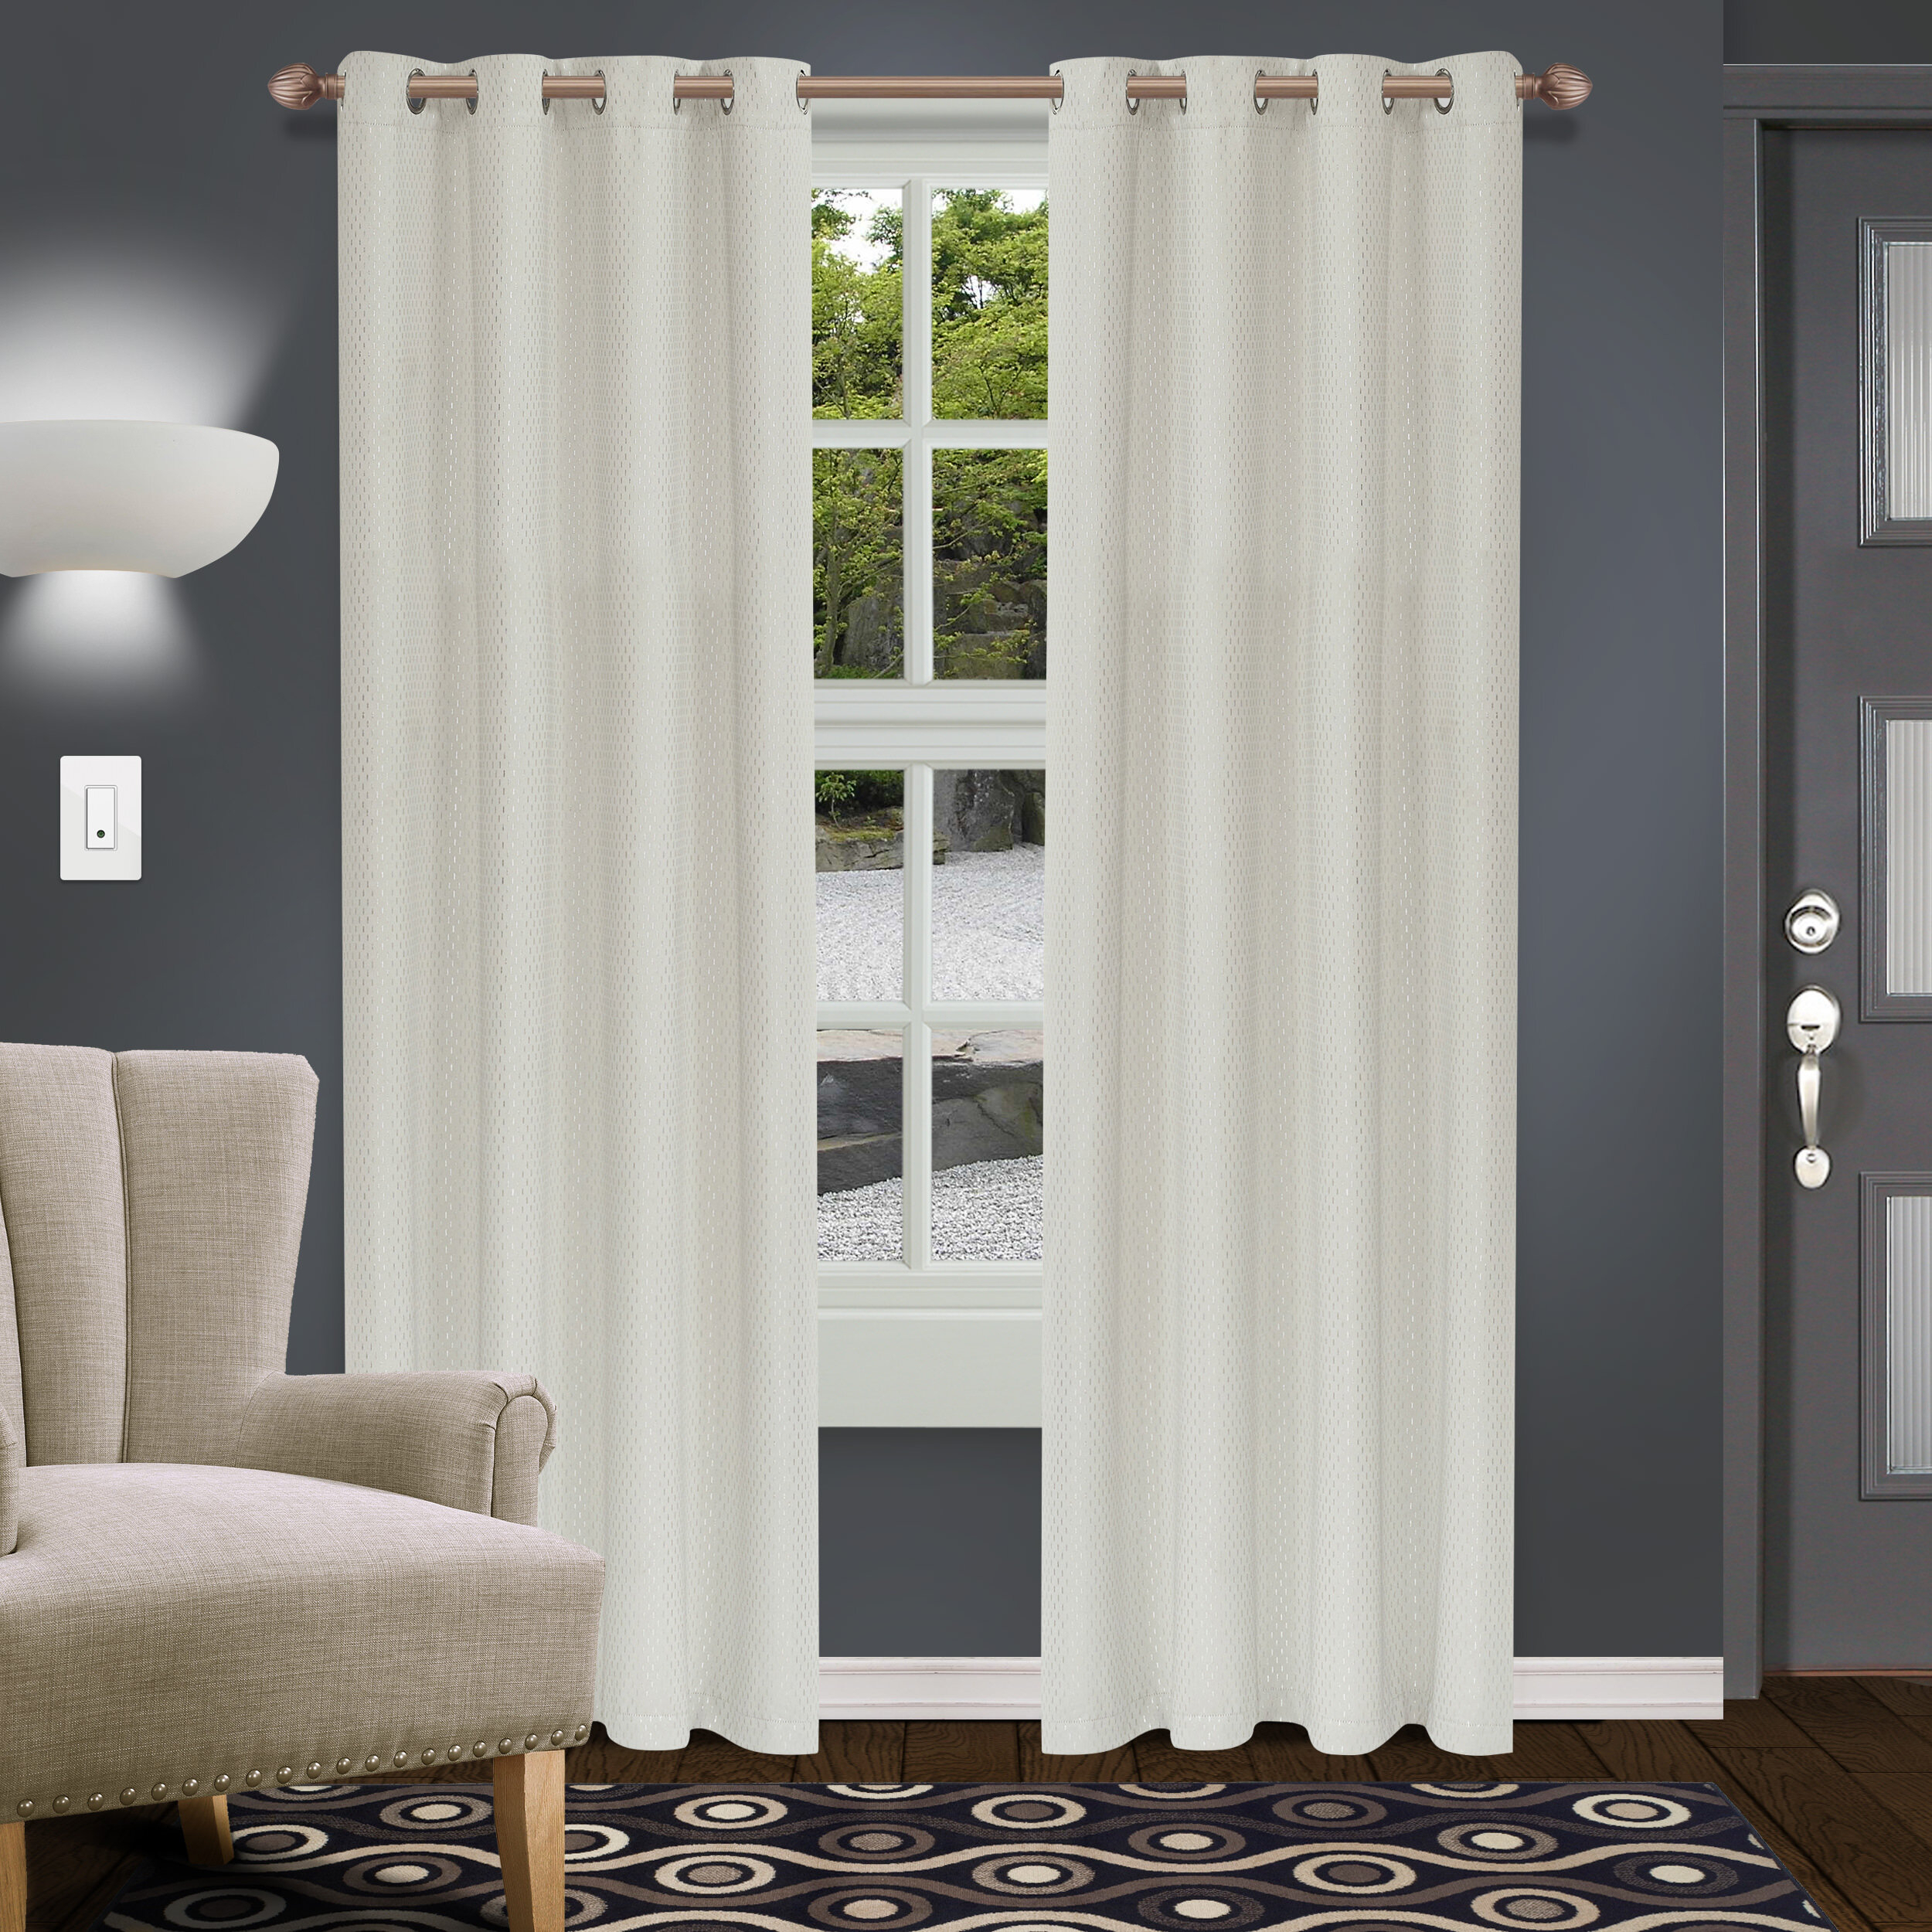 Blane Geometric Blackout Thermal Grommet Curtain Panel Inside Moroccan Style Thermal Insulated Blackout Curtain Panel Pairs (View 15 of 20)